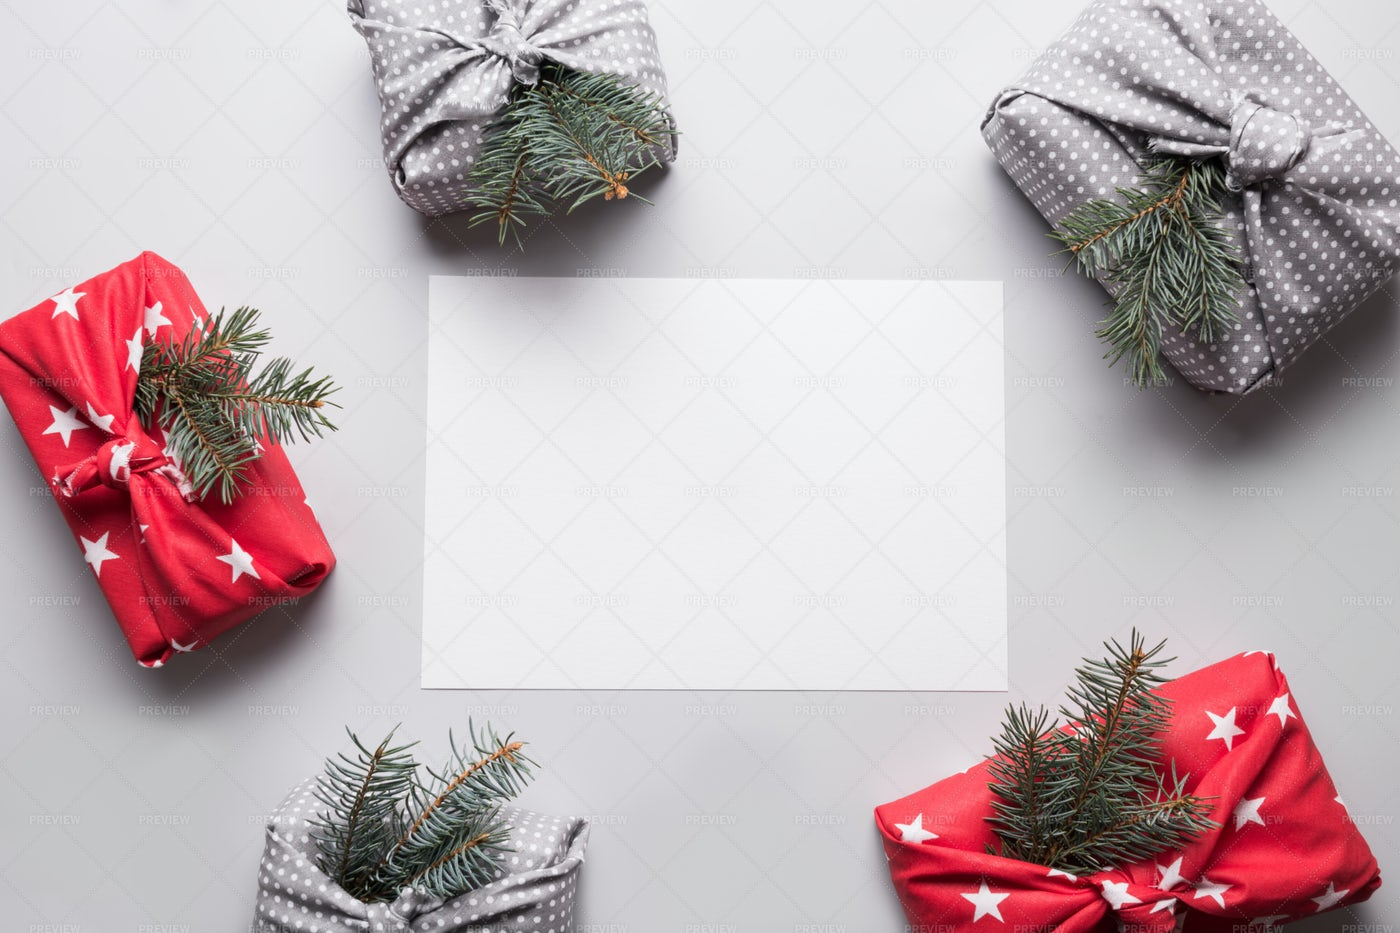 Eco-Friendly Christmas Gifts: Stock Photos